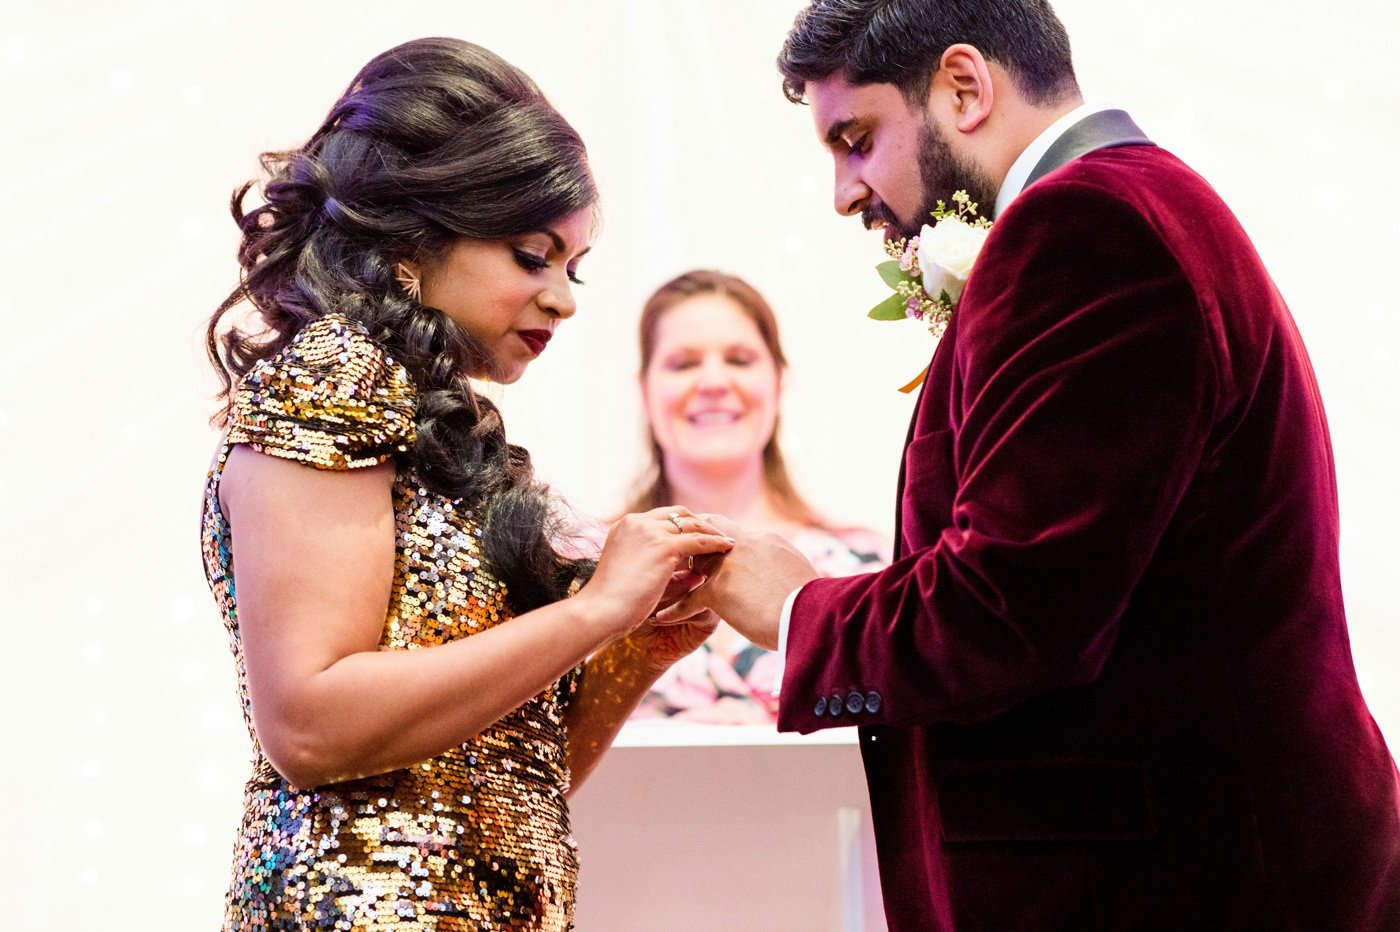 Bride wearing gold dress with groom wearing red velvet jacket exchange rings Surrey wedding